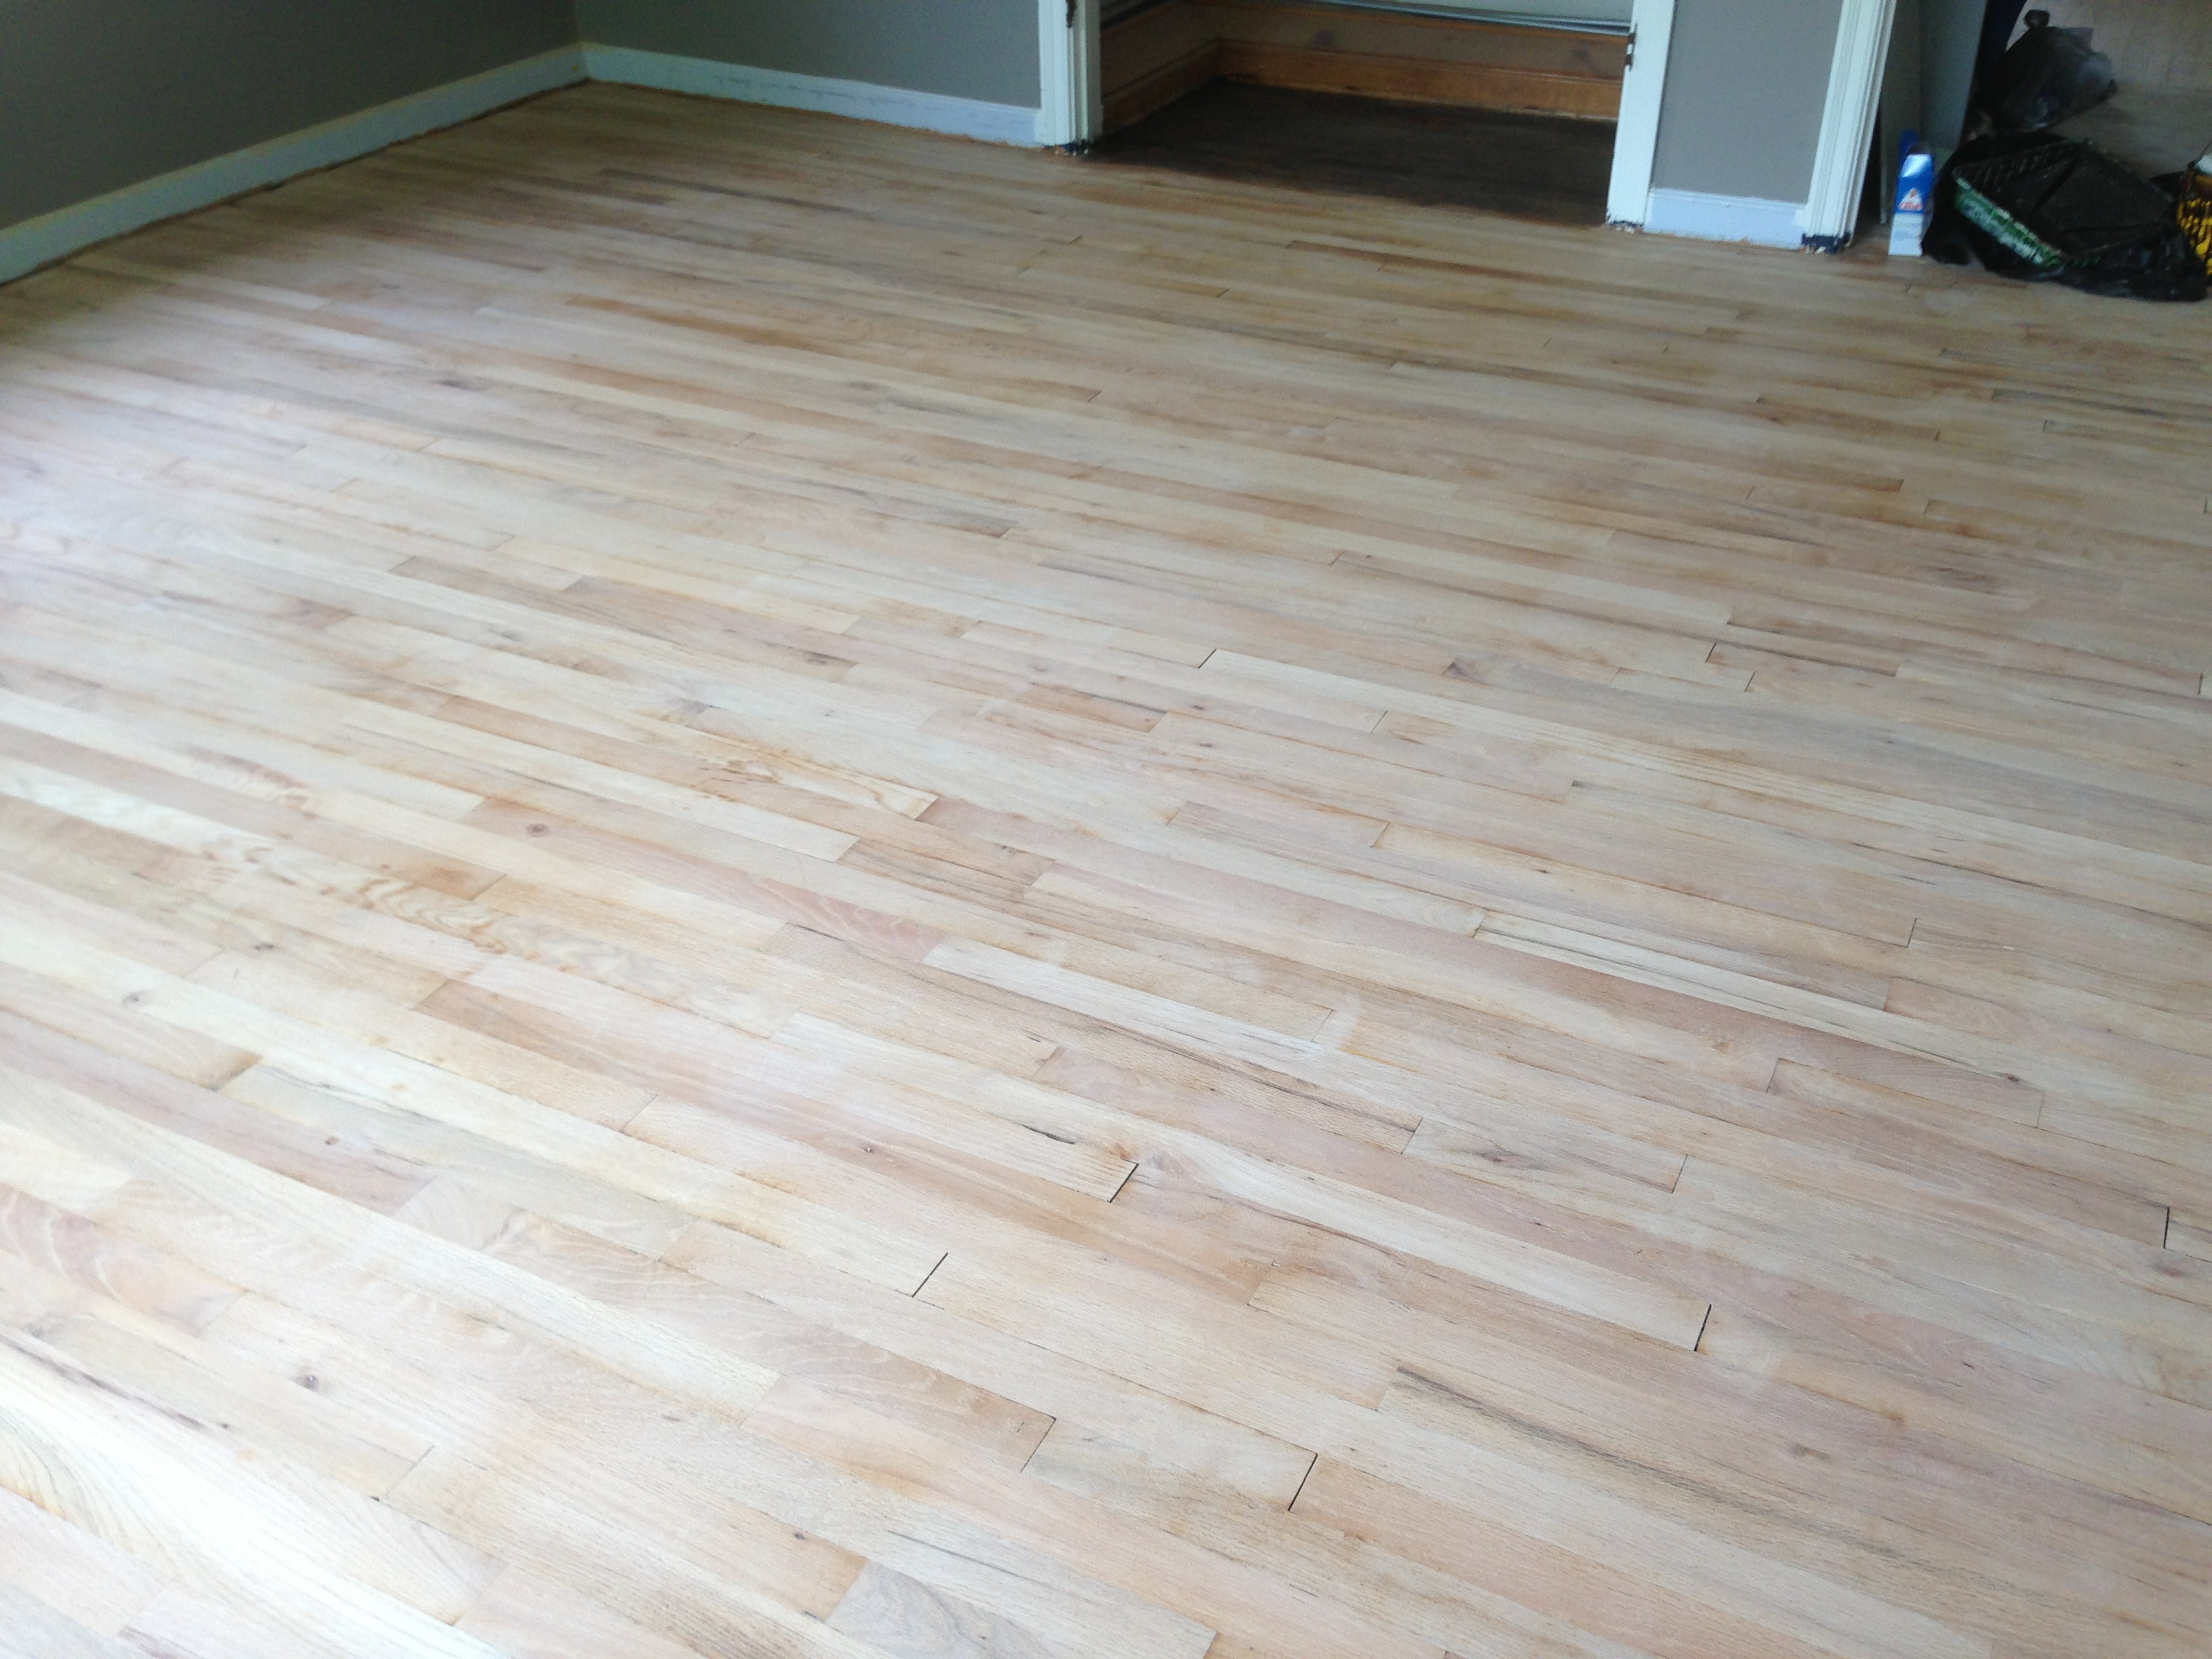 refinishing hardwood floors filling gaps of uncategorized flair regarding after tediously sanding the floors we were ready for the next step of staining and sealing the floors here is a picture of the floors pre staining